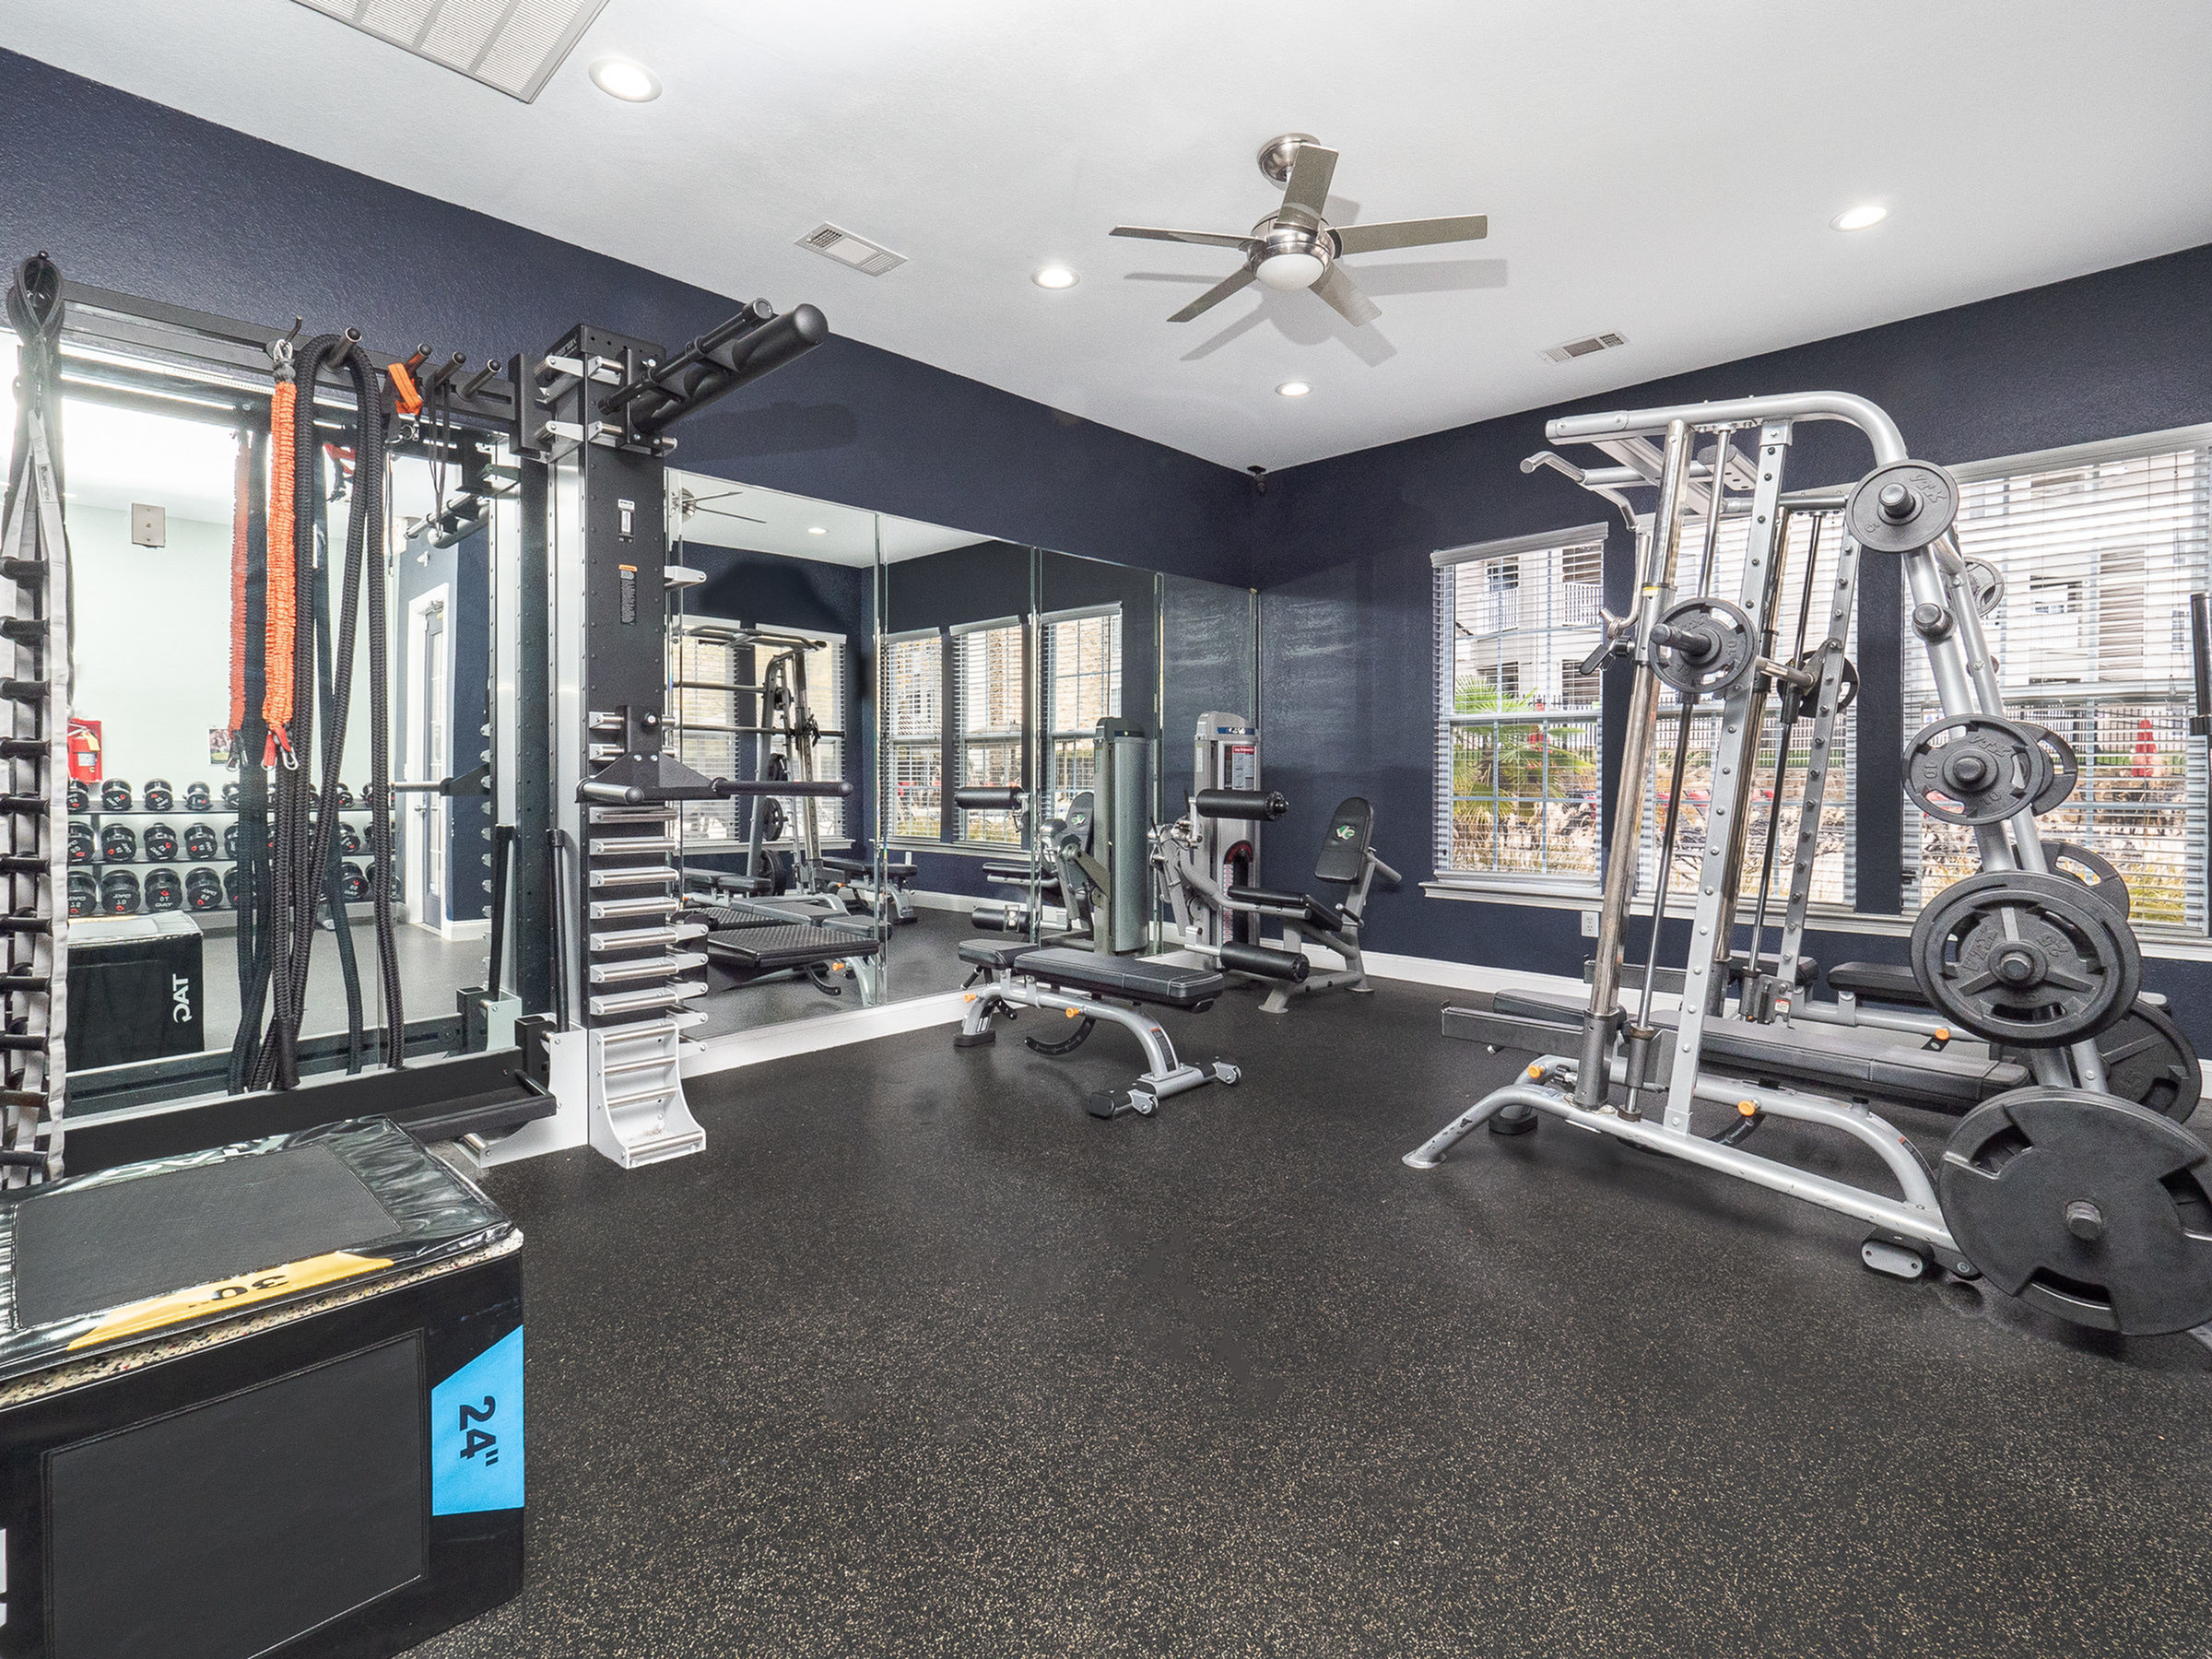 Image of Fitness Center for Village Green Student Housing